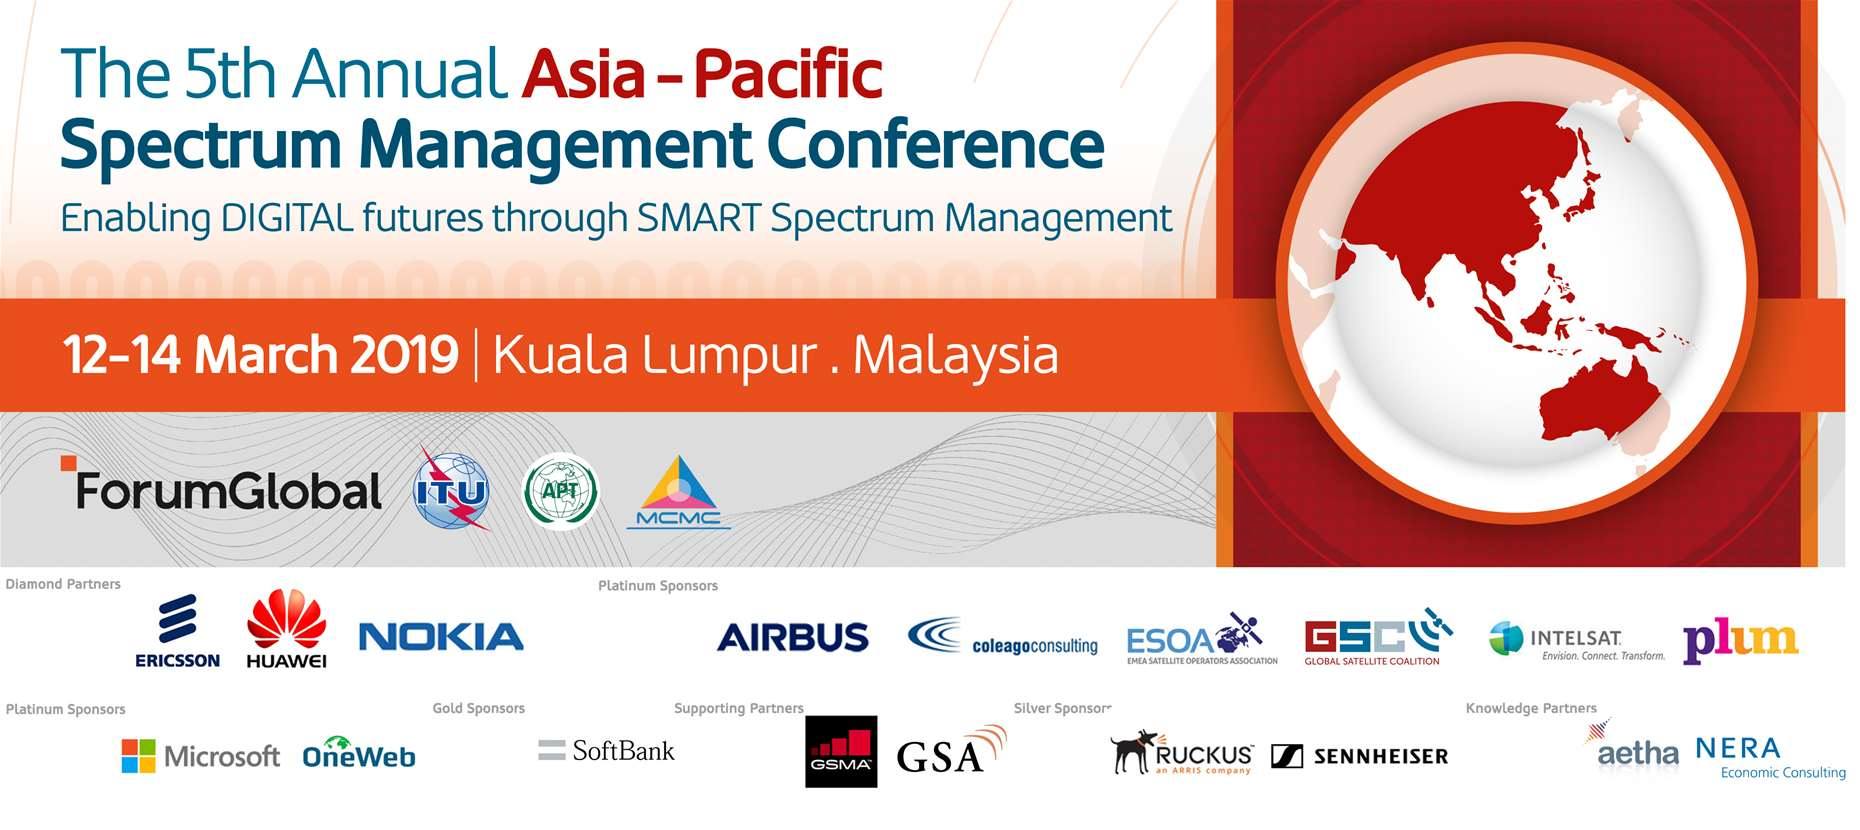 The 5th Annual Asia-Pacific Spectrum Management Conference,